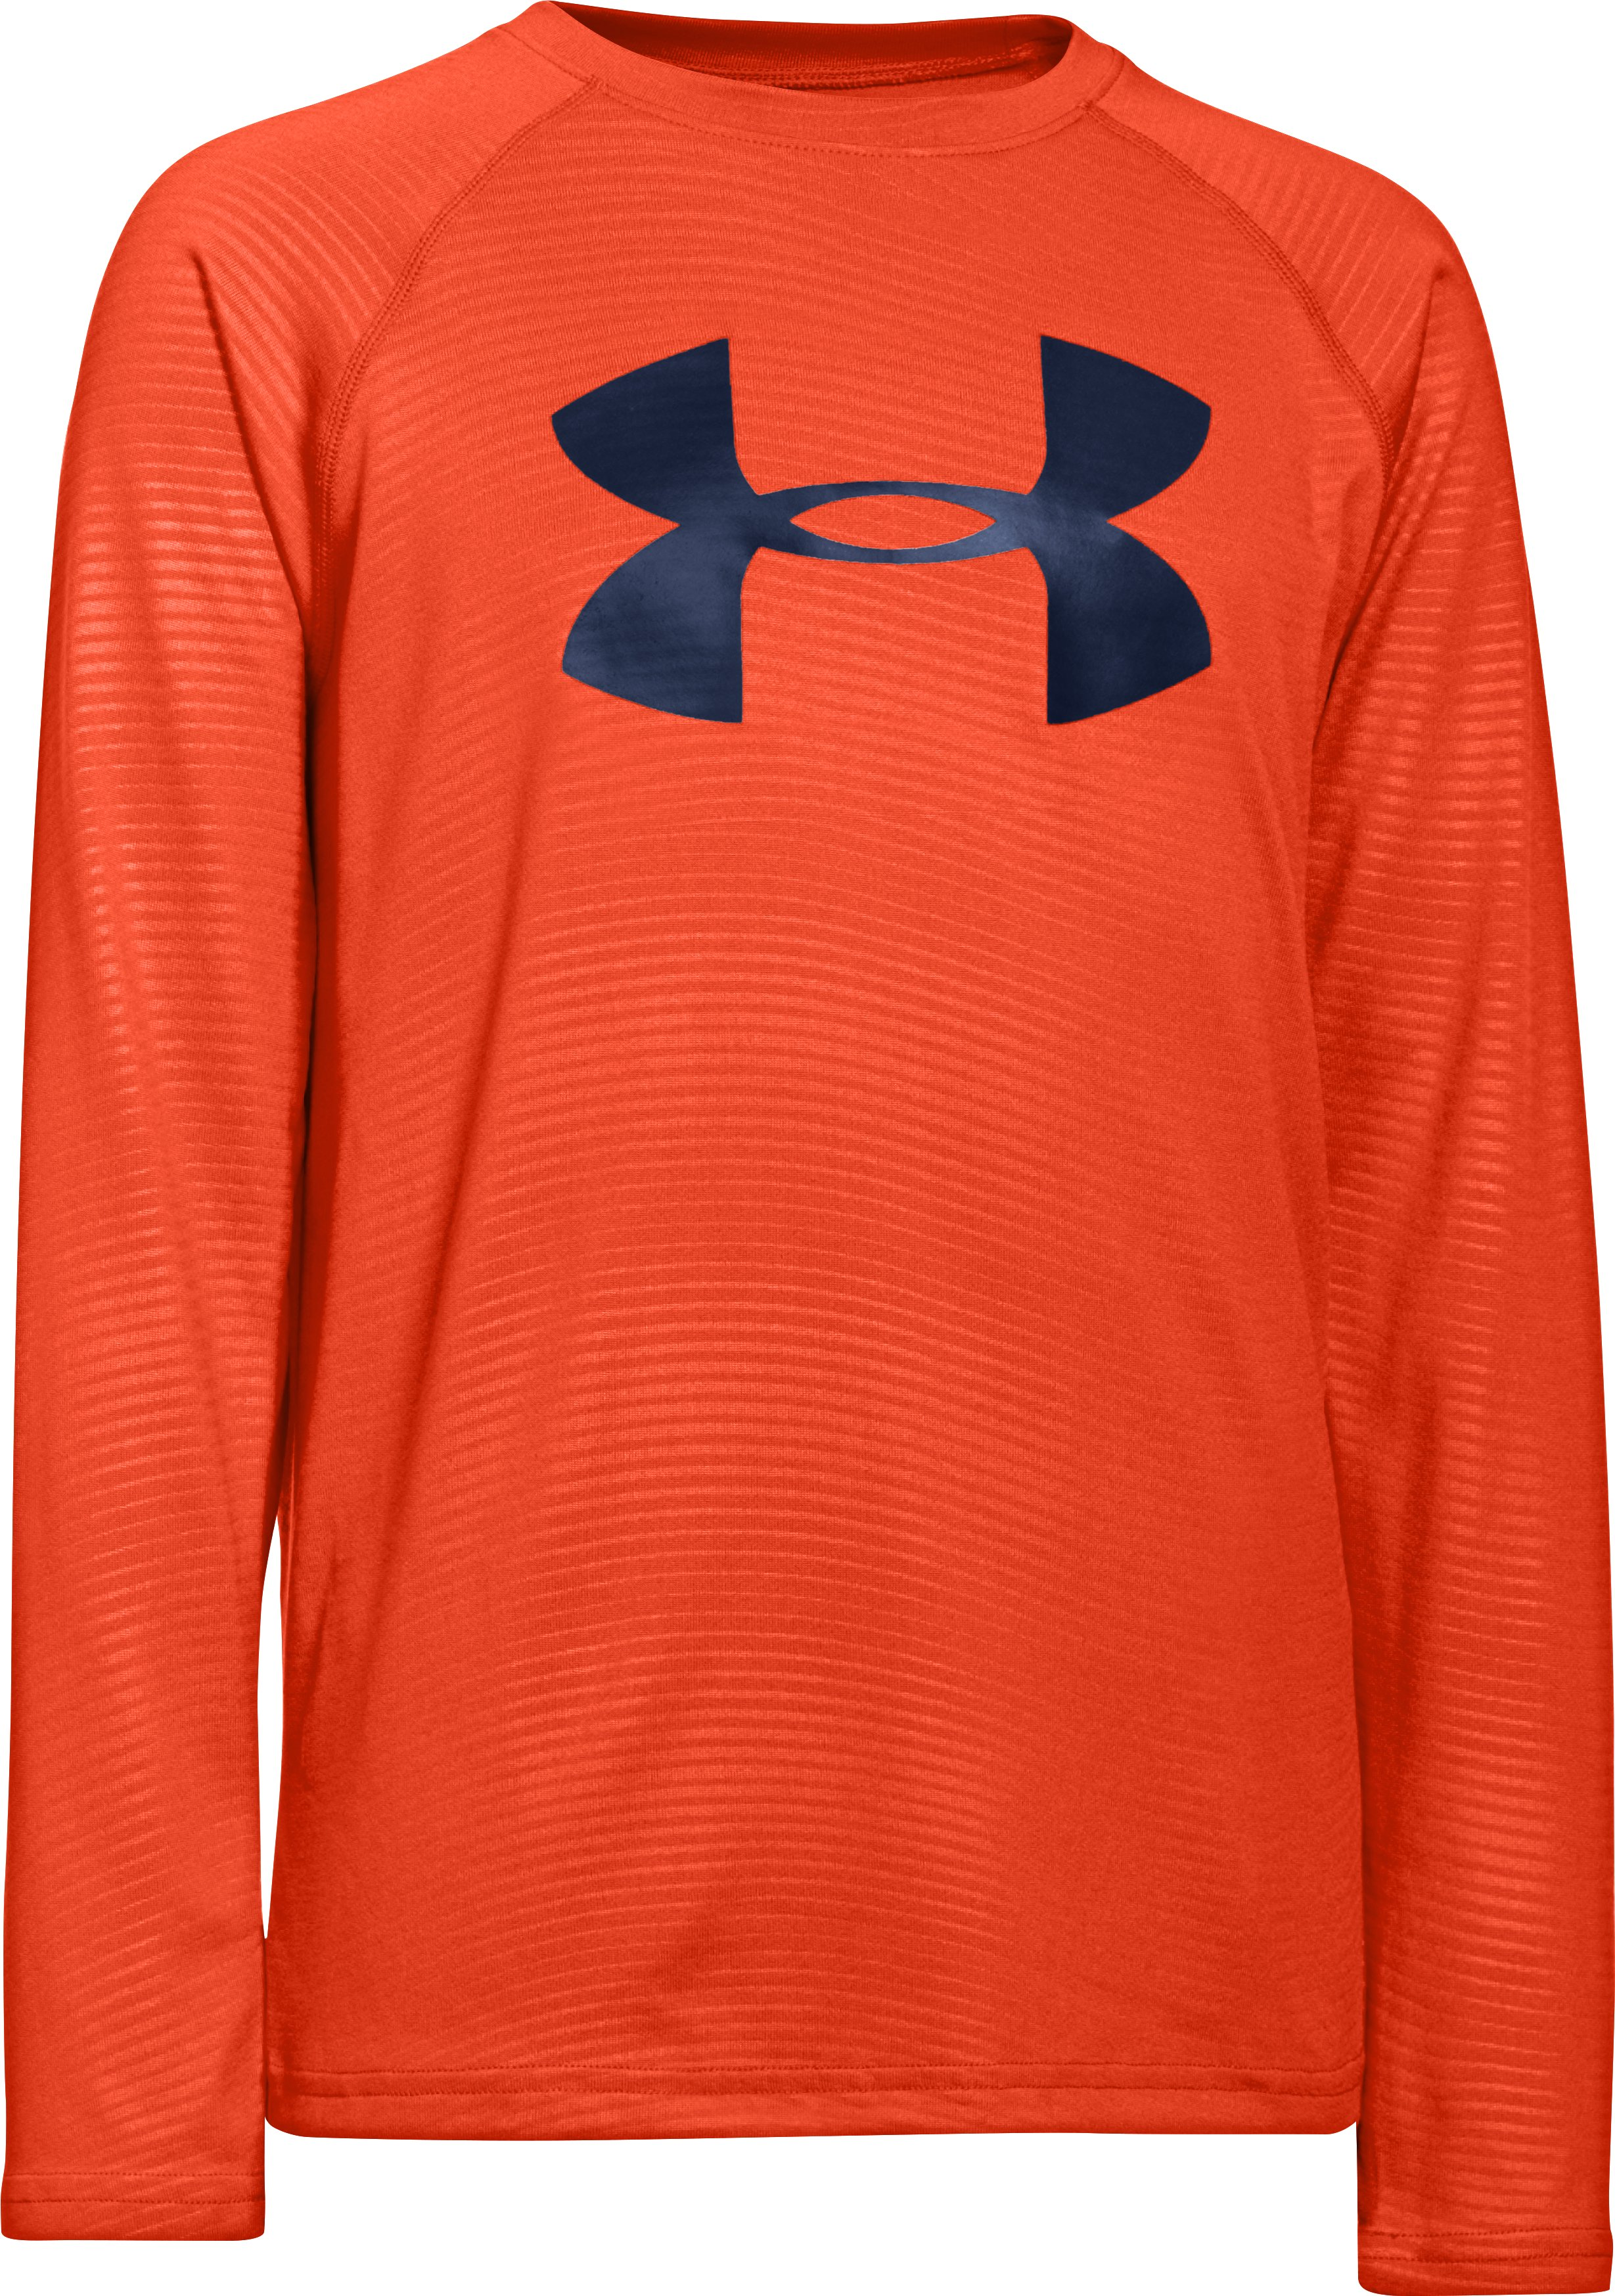 Boys' UA Tech™ Big Logo Printed Long Sleeve T-Shirt, Dark Orange